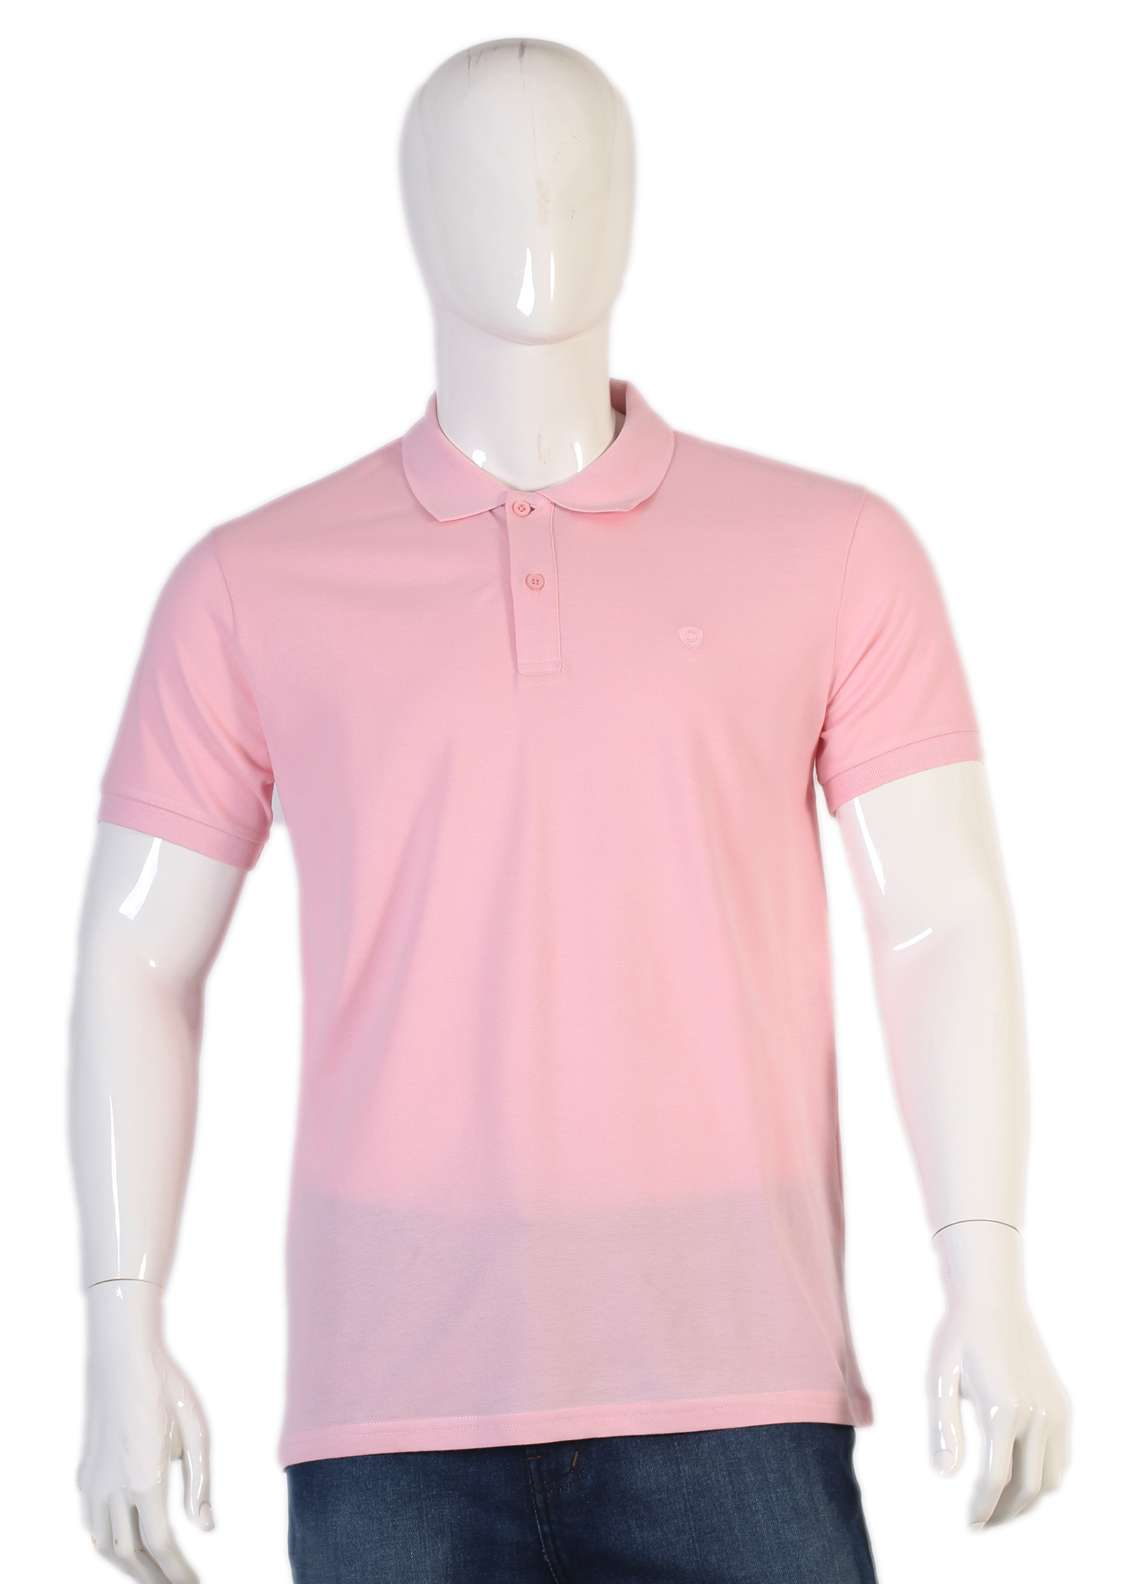 Sanaulla Exclusive Range Jersey Polo Men T-Shirts - Pink TKM18S 97